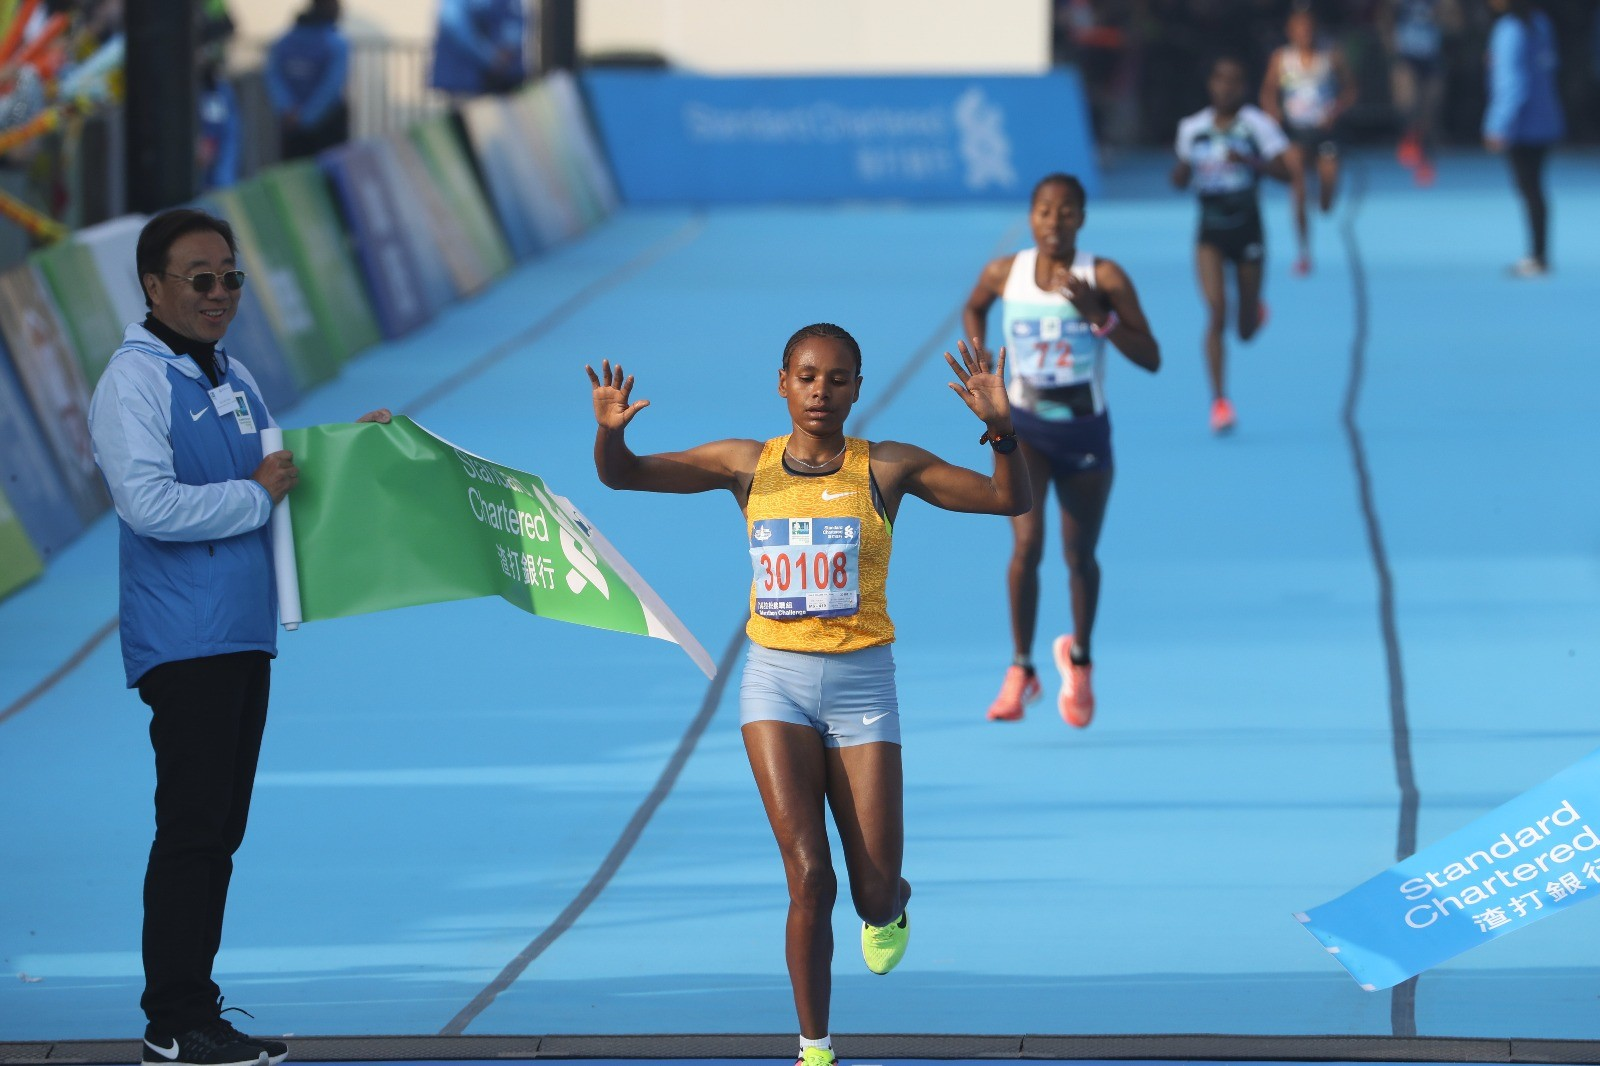 Belachew and Tollesa aim to retain their titles